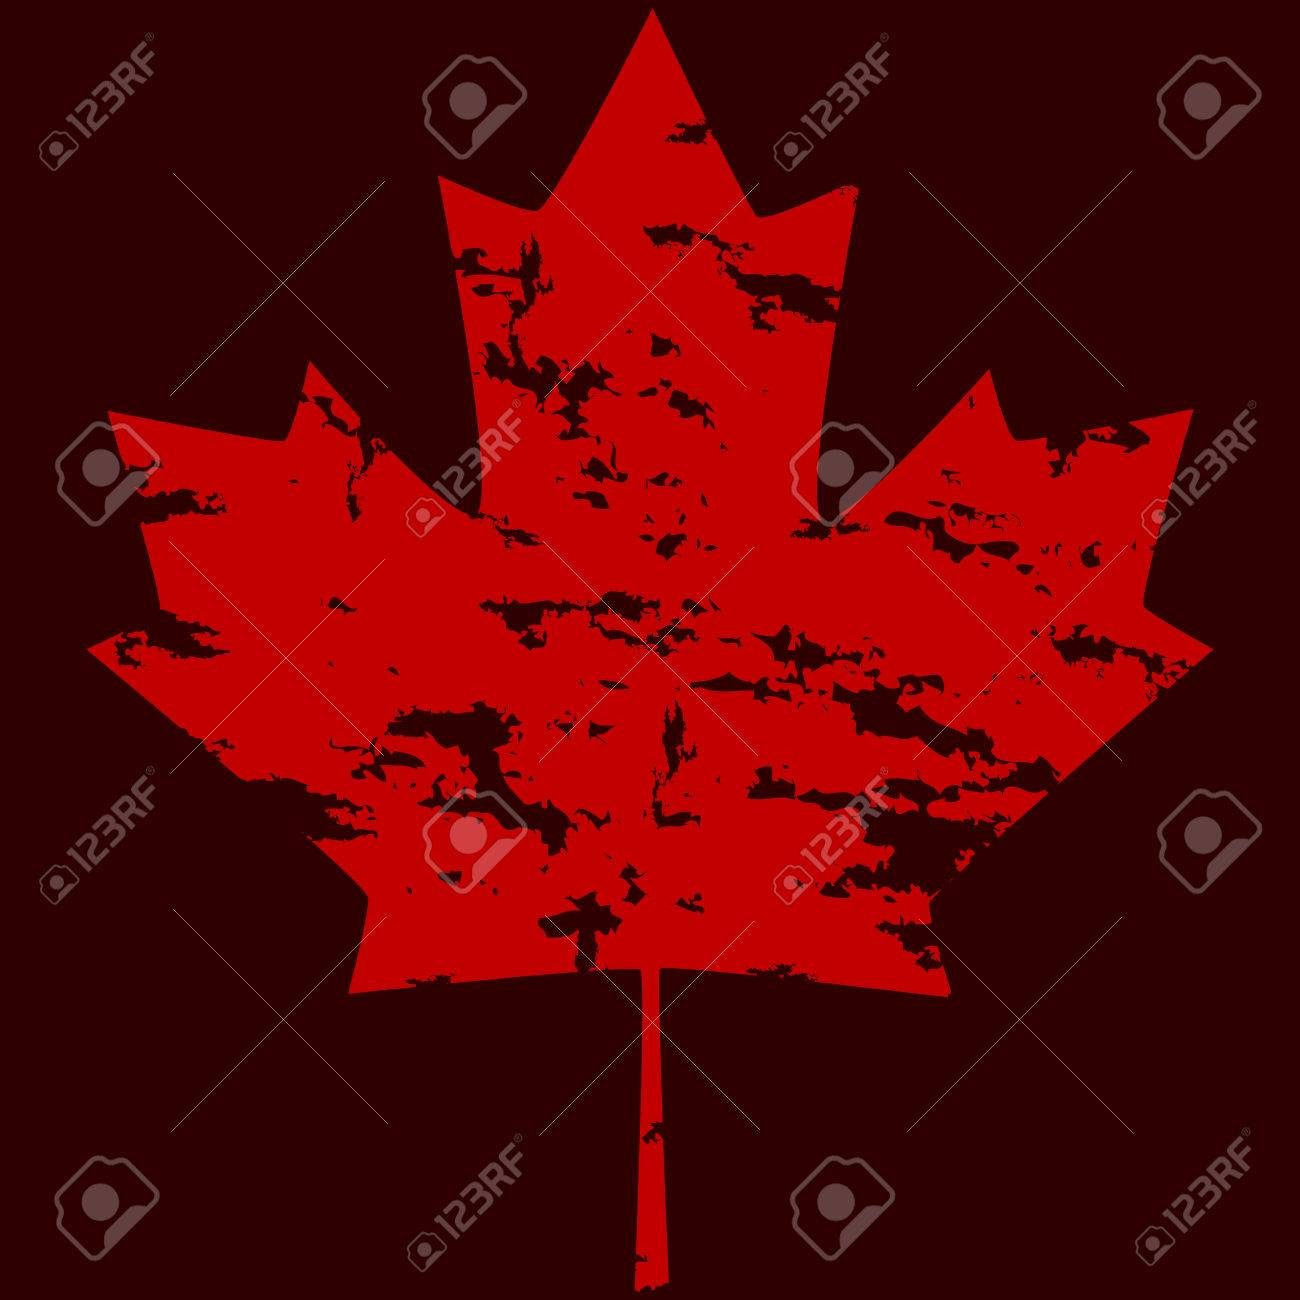 grunge version of a canadian maple leaf over a dark red